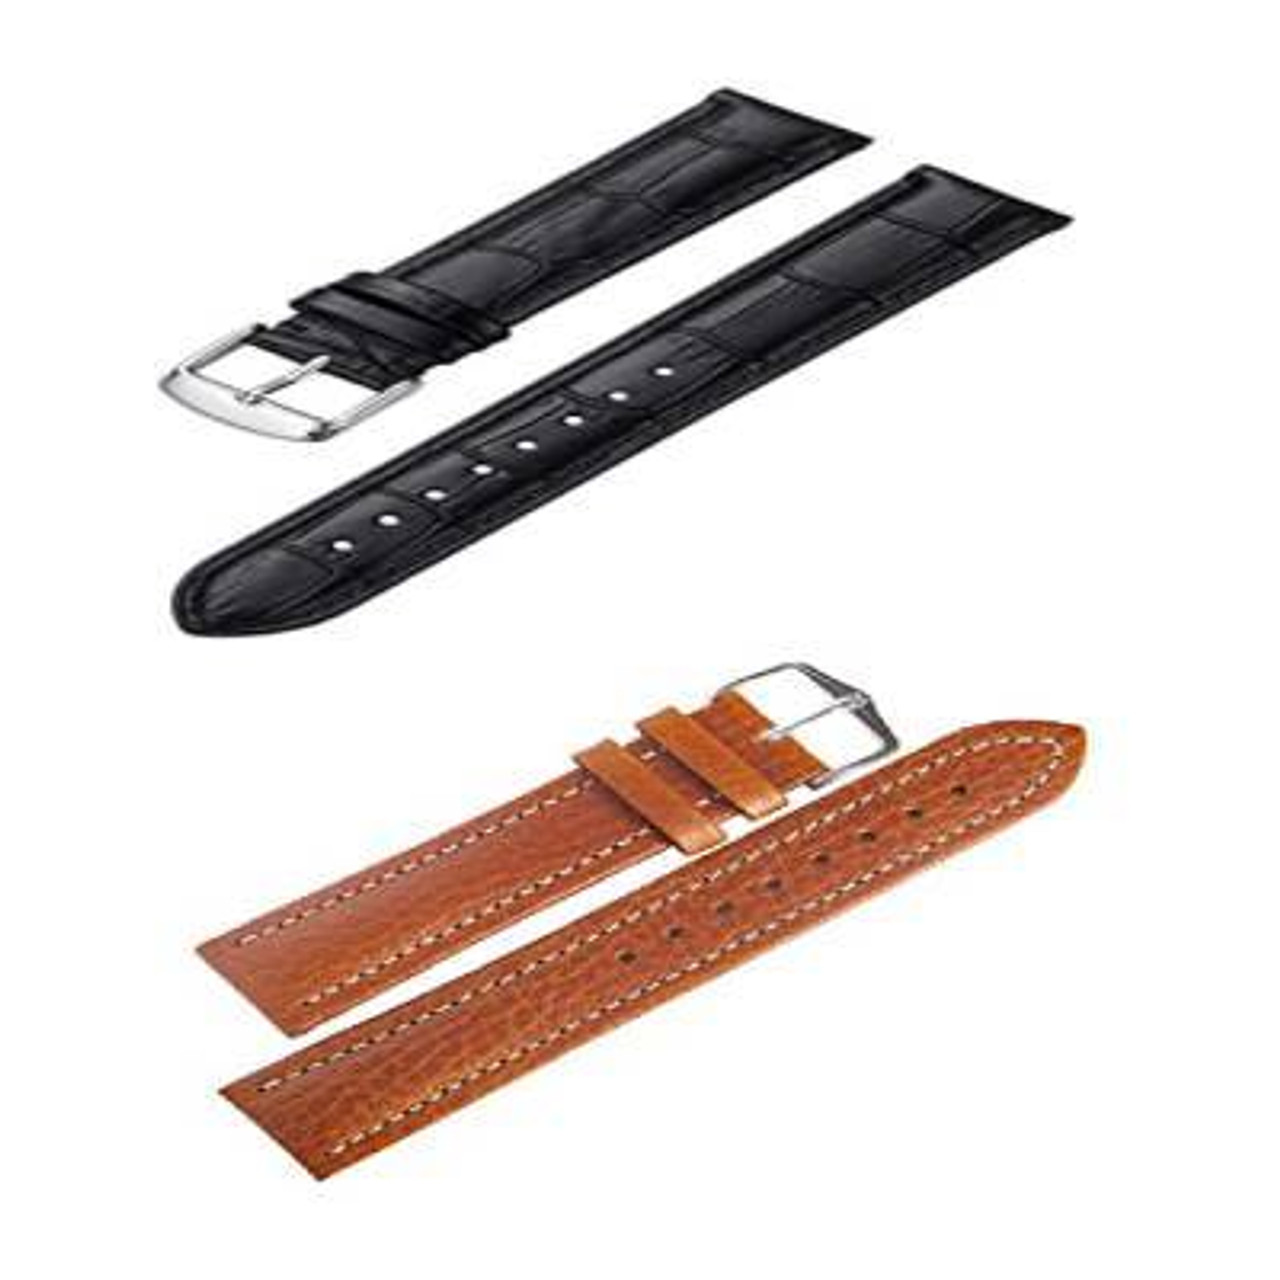 Watch Bands & Accessery